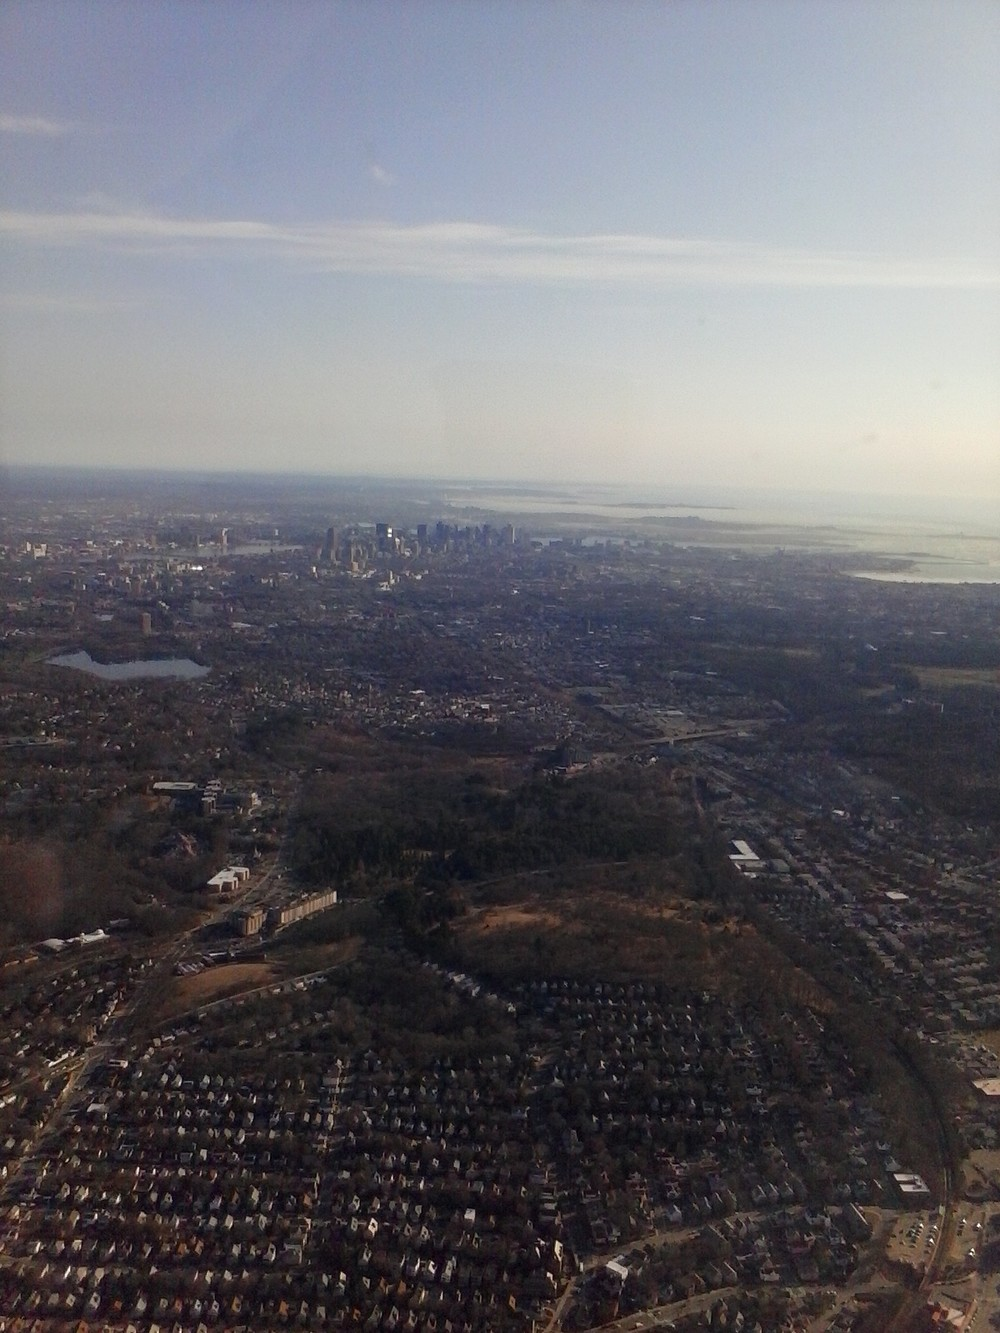 Boston seen from the south